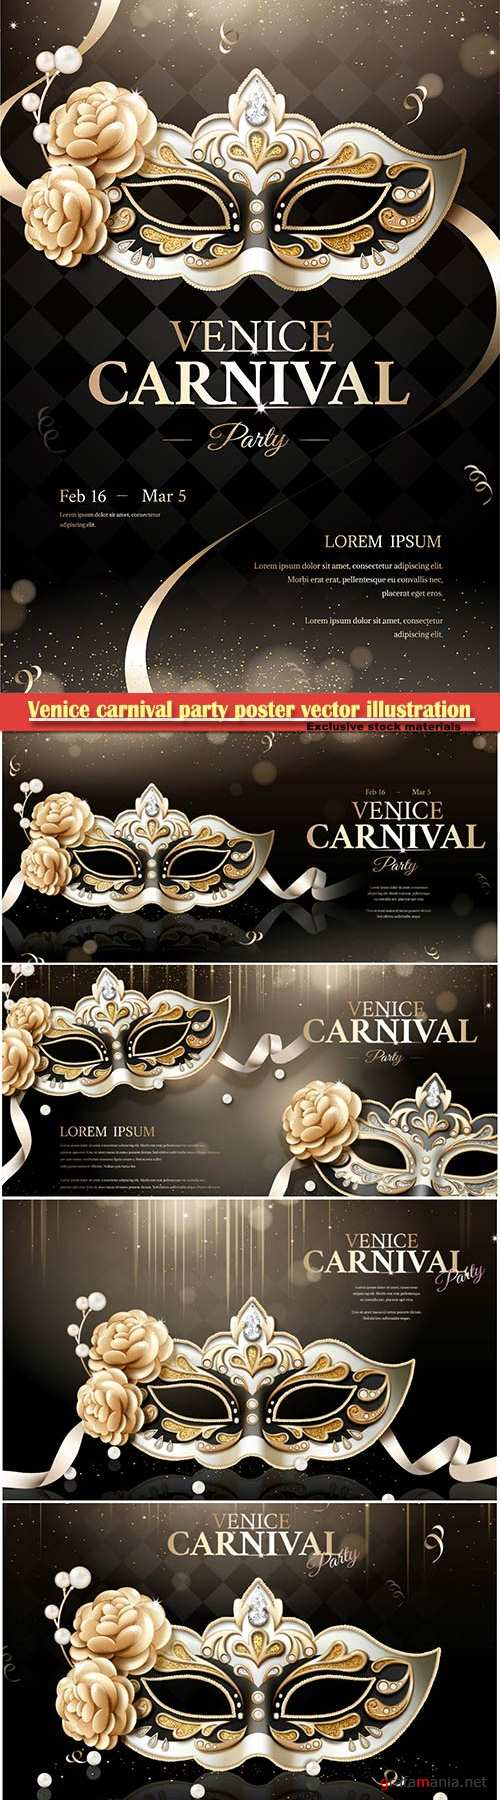 Venice carnival party poster vector illustration